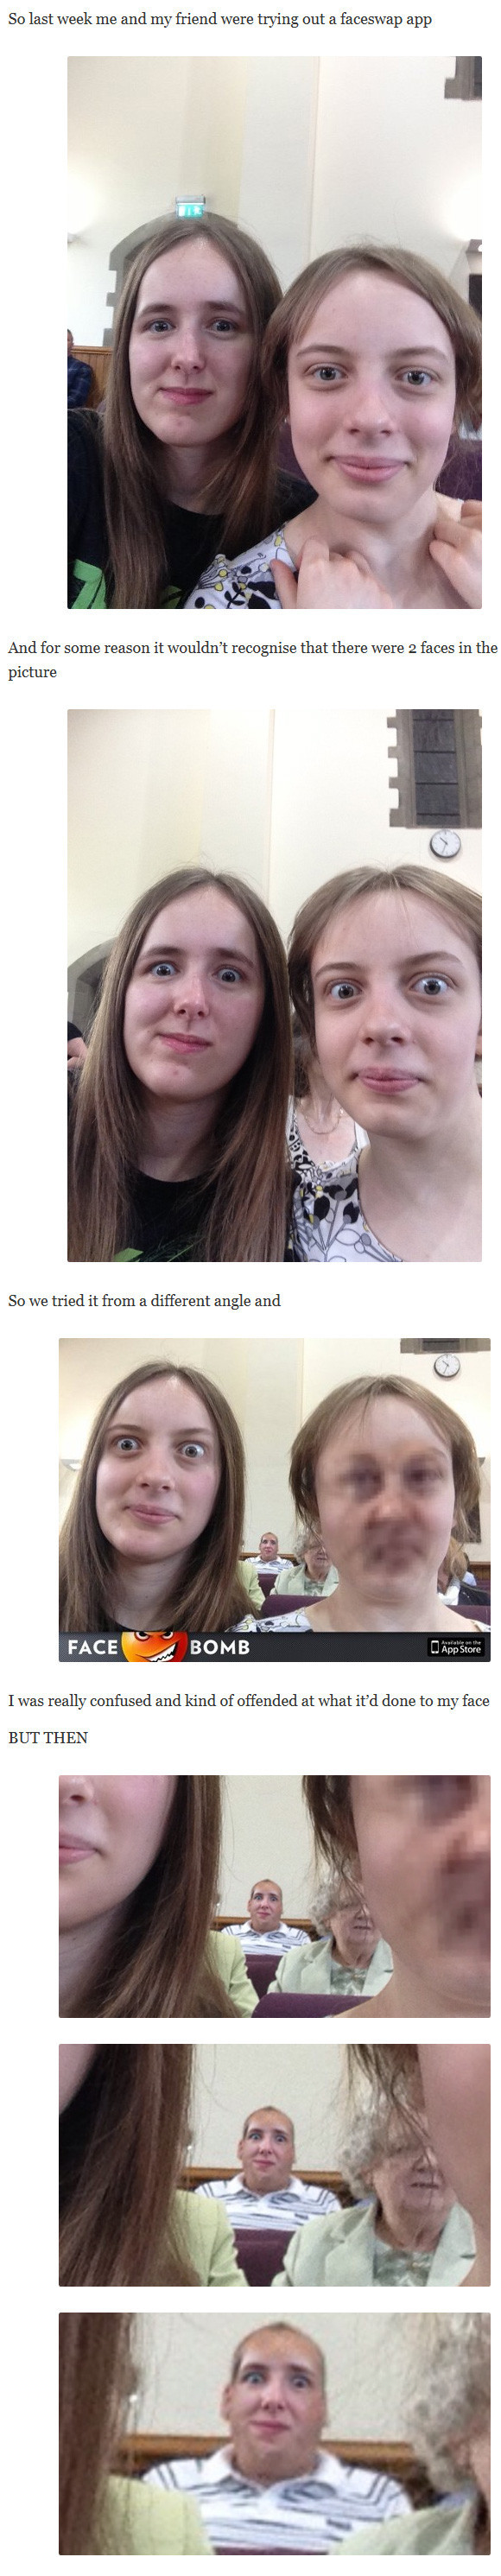 So Last Week Me and My Friend Tried Out a Faceswap App